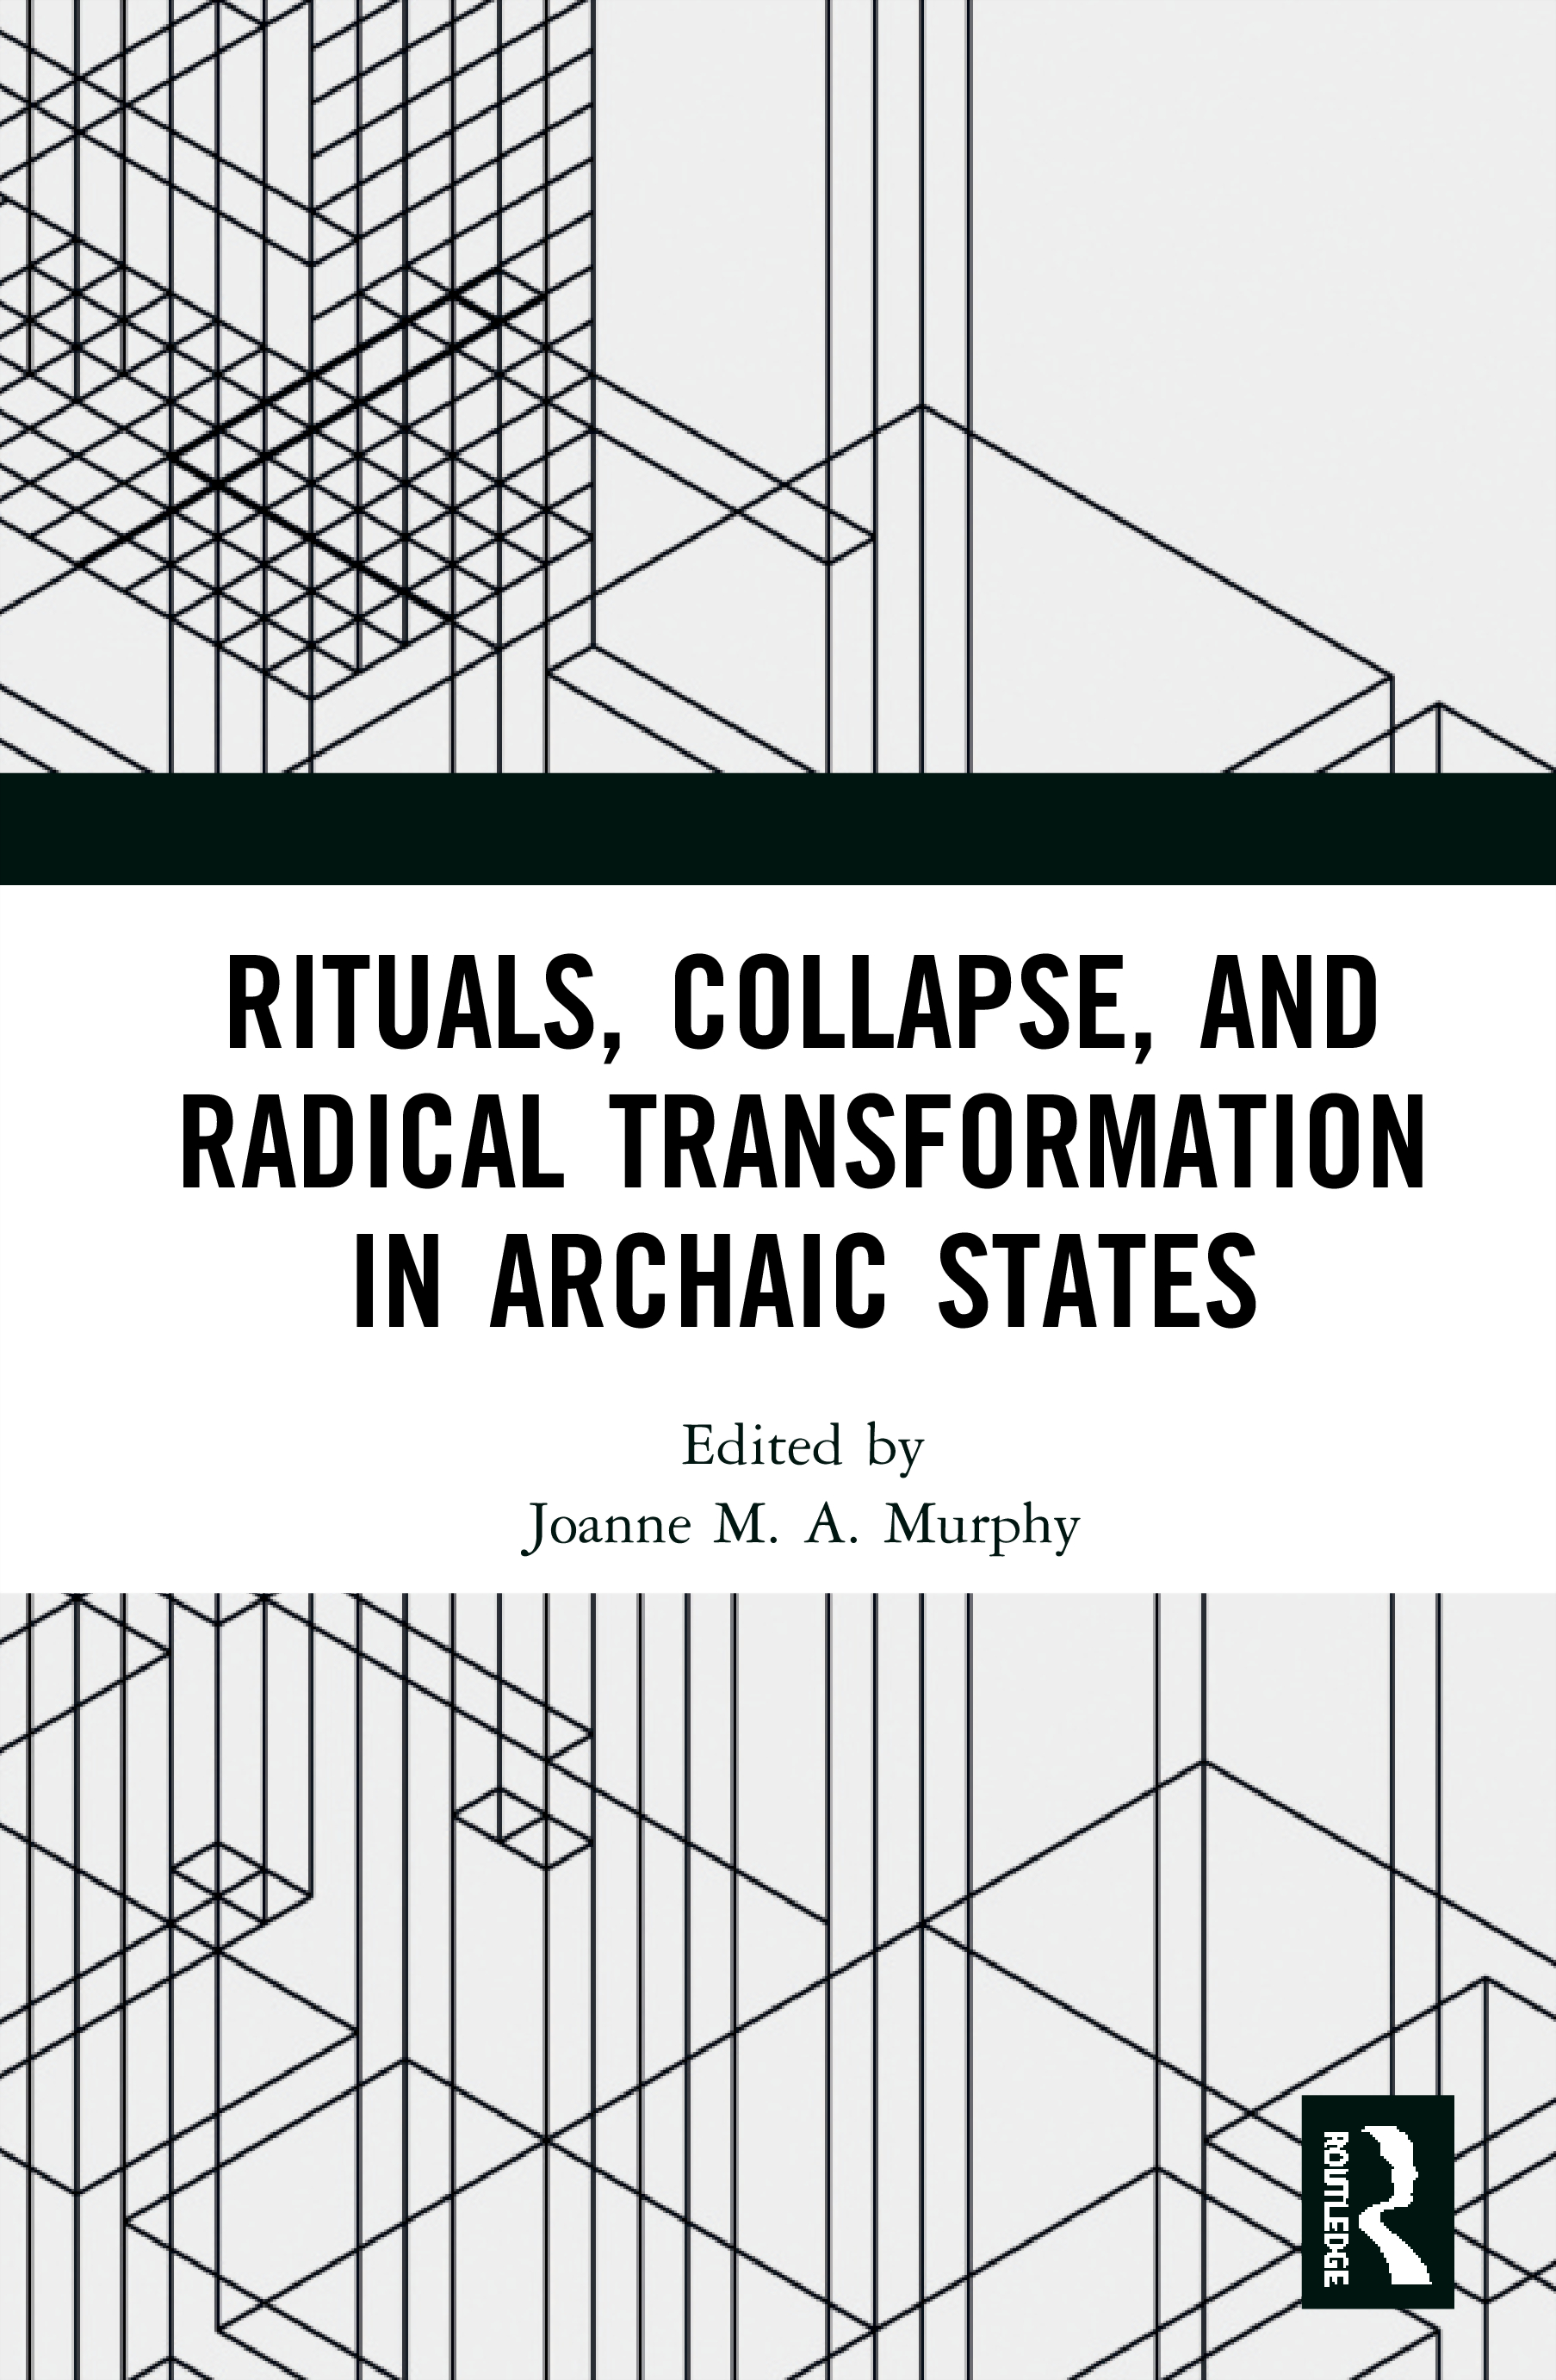 Rituals, Collapse, and Radical Transformation in Archaic States